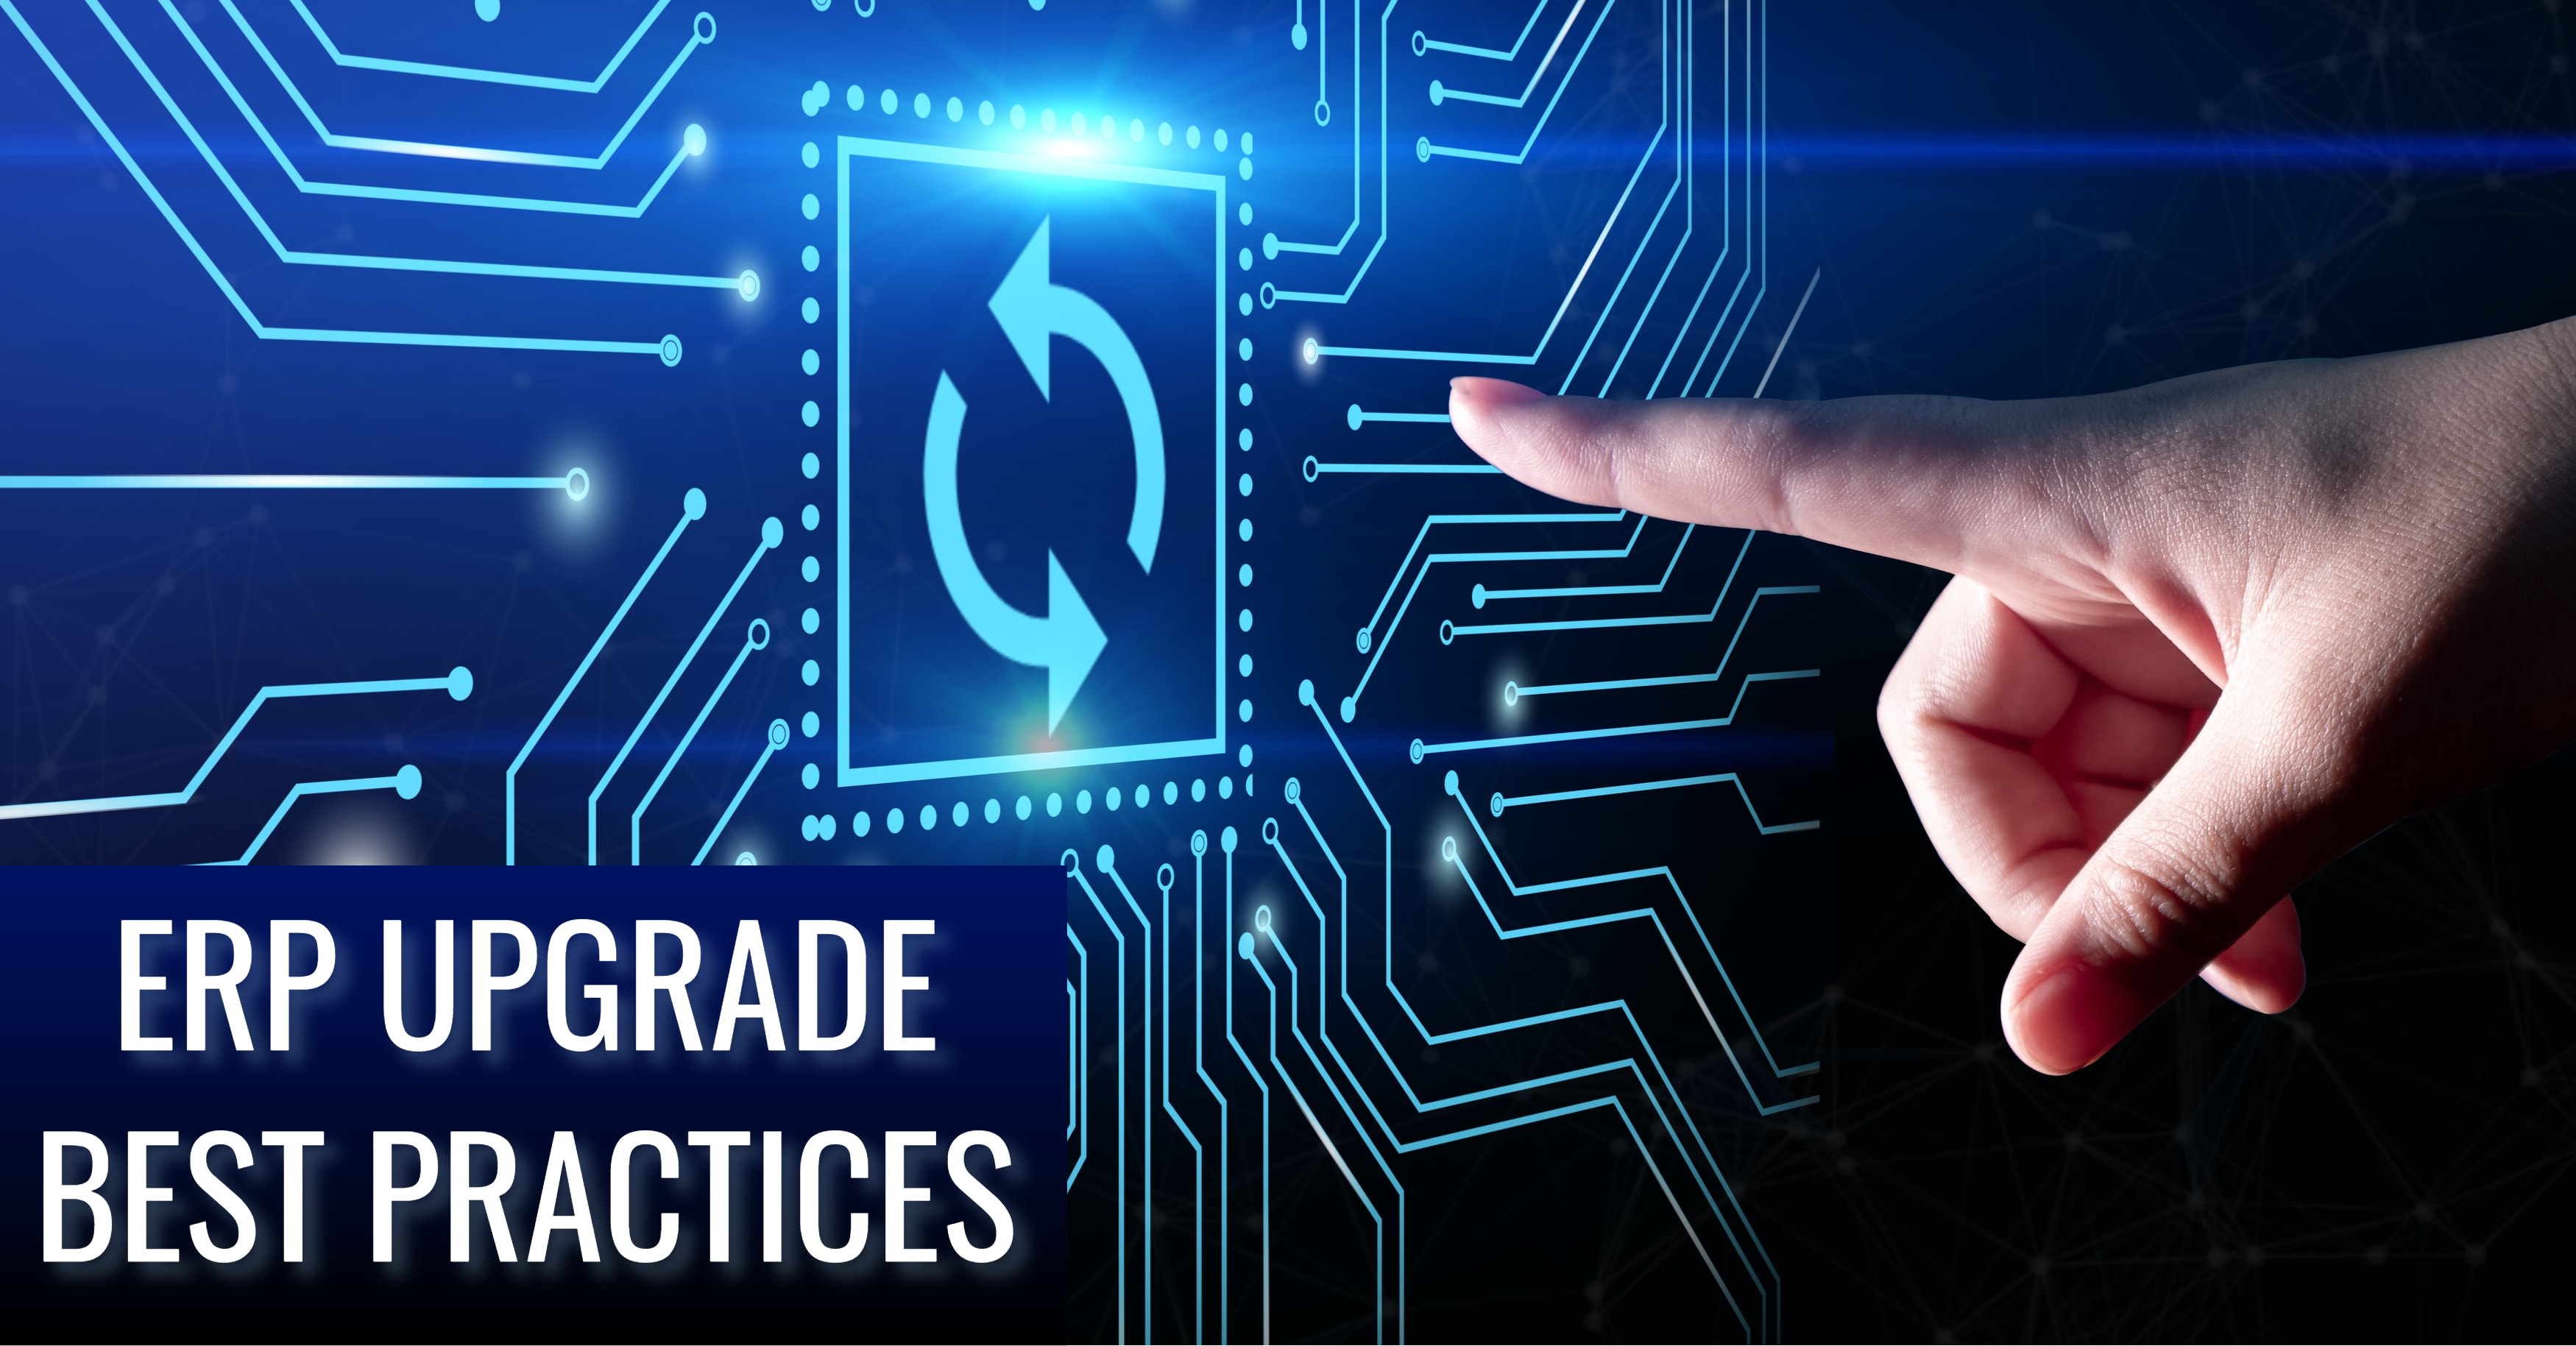 ERP Upgrade Best Practices